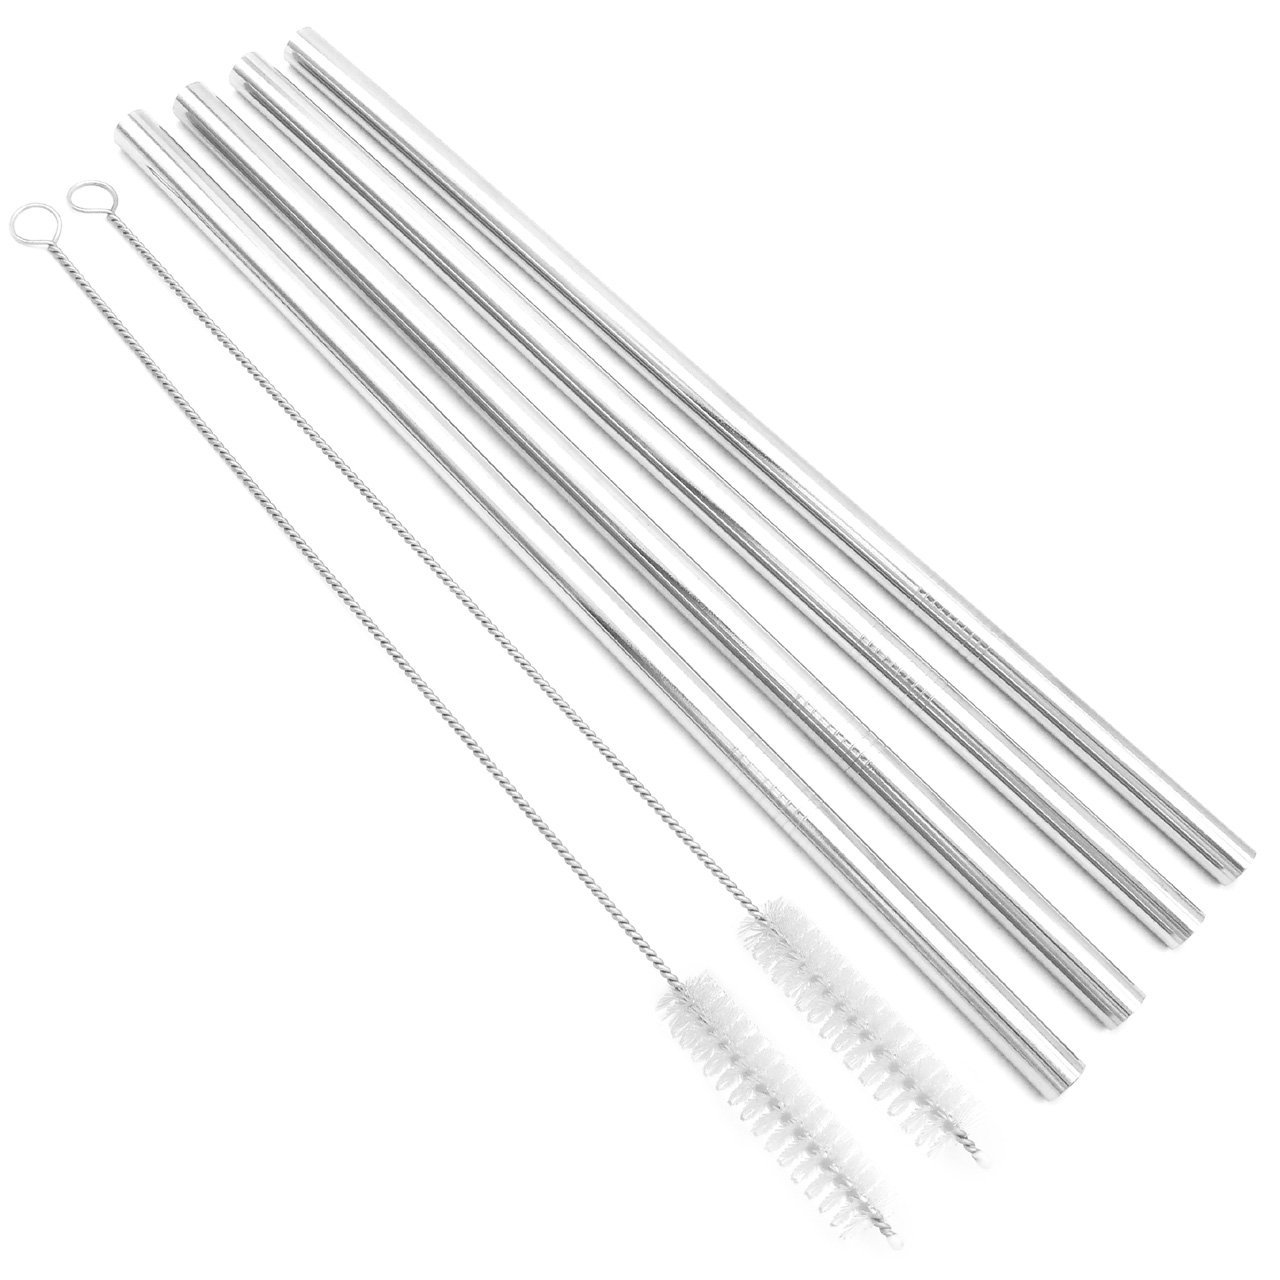 Straight SSDS305X9 Big Drinking Straws Reusable 12 Extra Long 9mm Extra Wide SUS 304 Food-Grade 18//8 Stainless Steel Set of 4 with 2 Cleaning Brushes